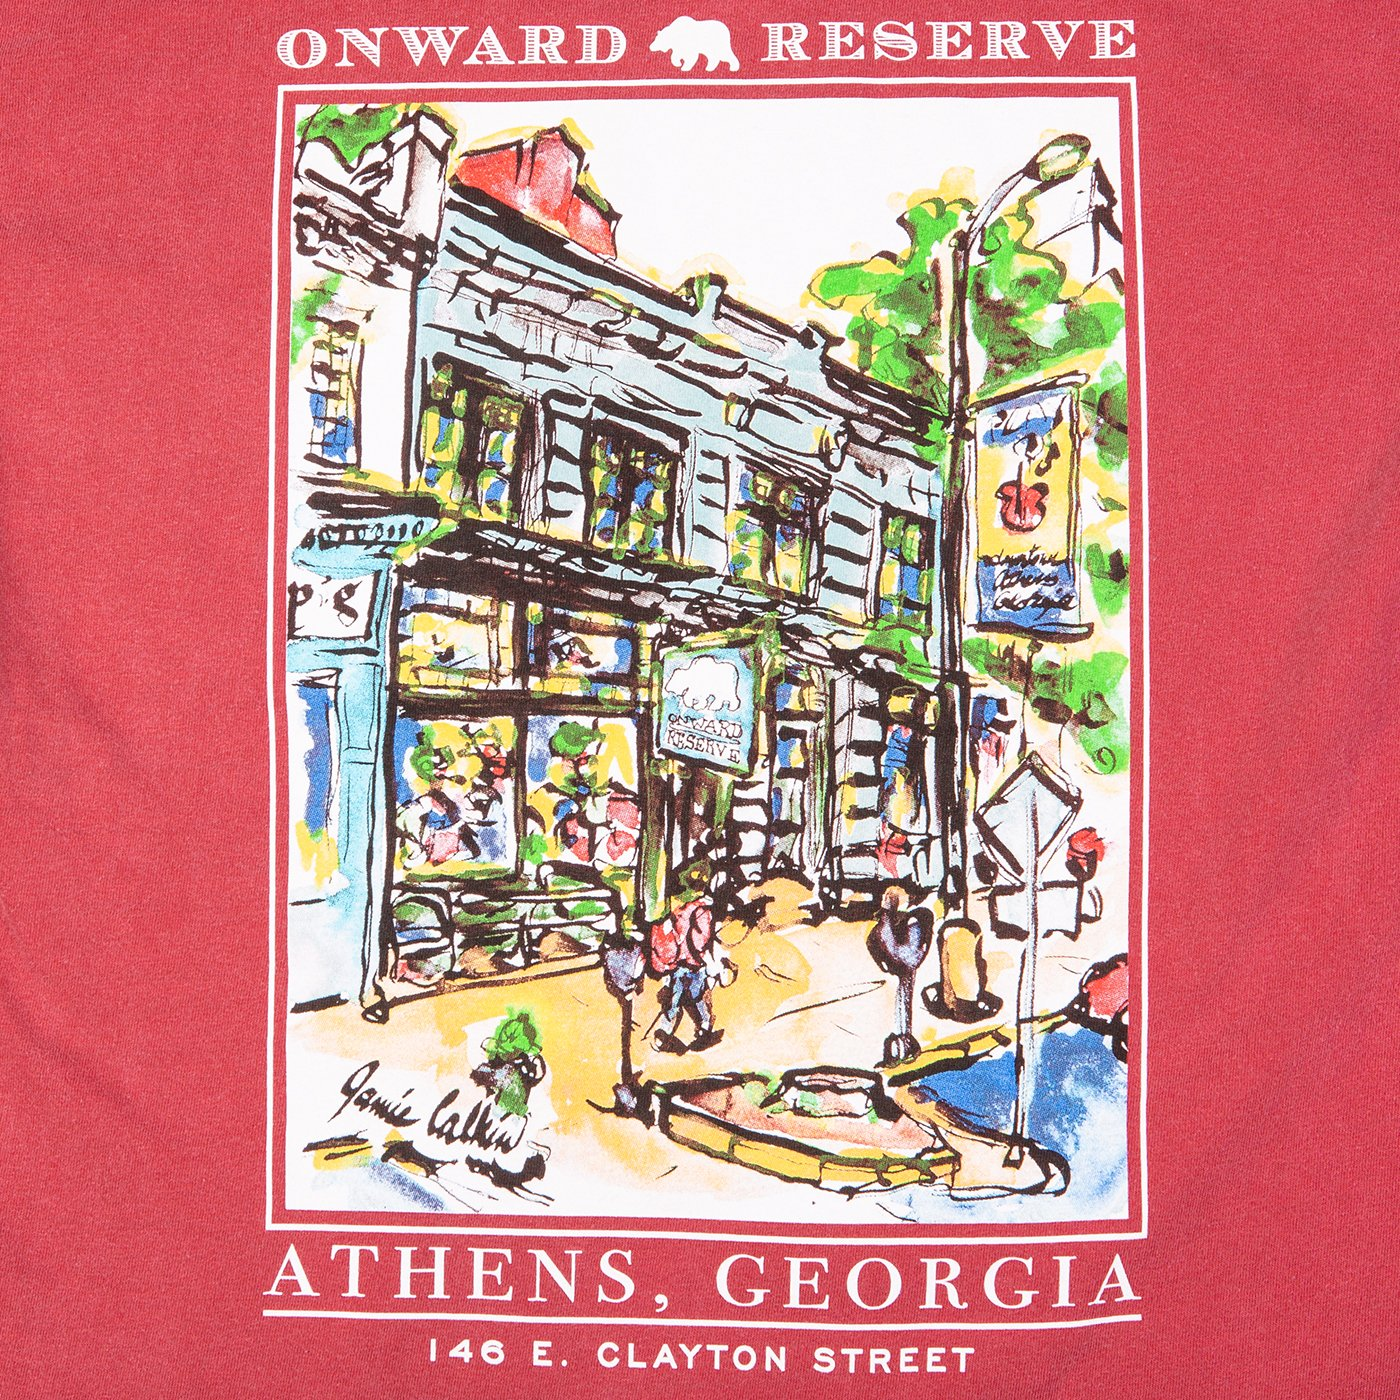 OR-JamieD-Tee-SS-Athens-Red-Detail.jpg